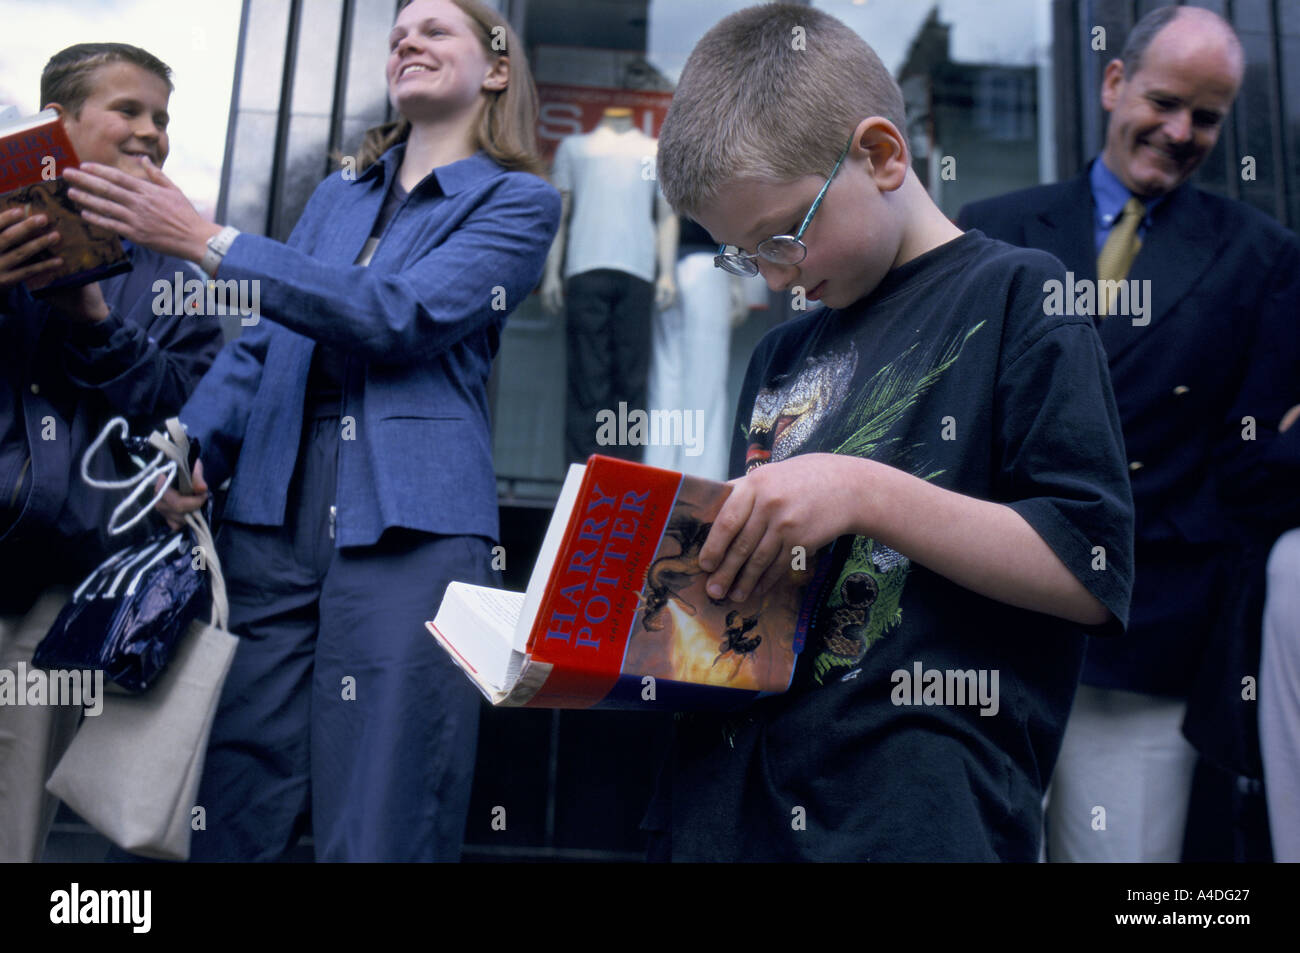 Fans of the Harry Potter books wait to meet author J K Rowling, to sign their books. 2000 - Stock Image